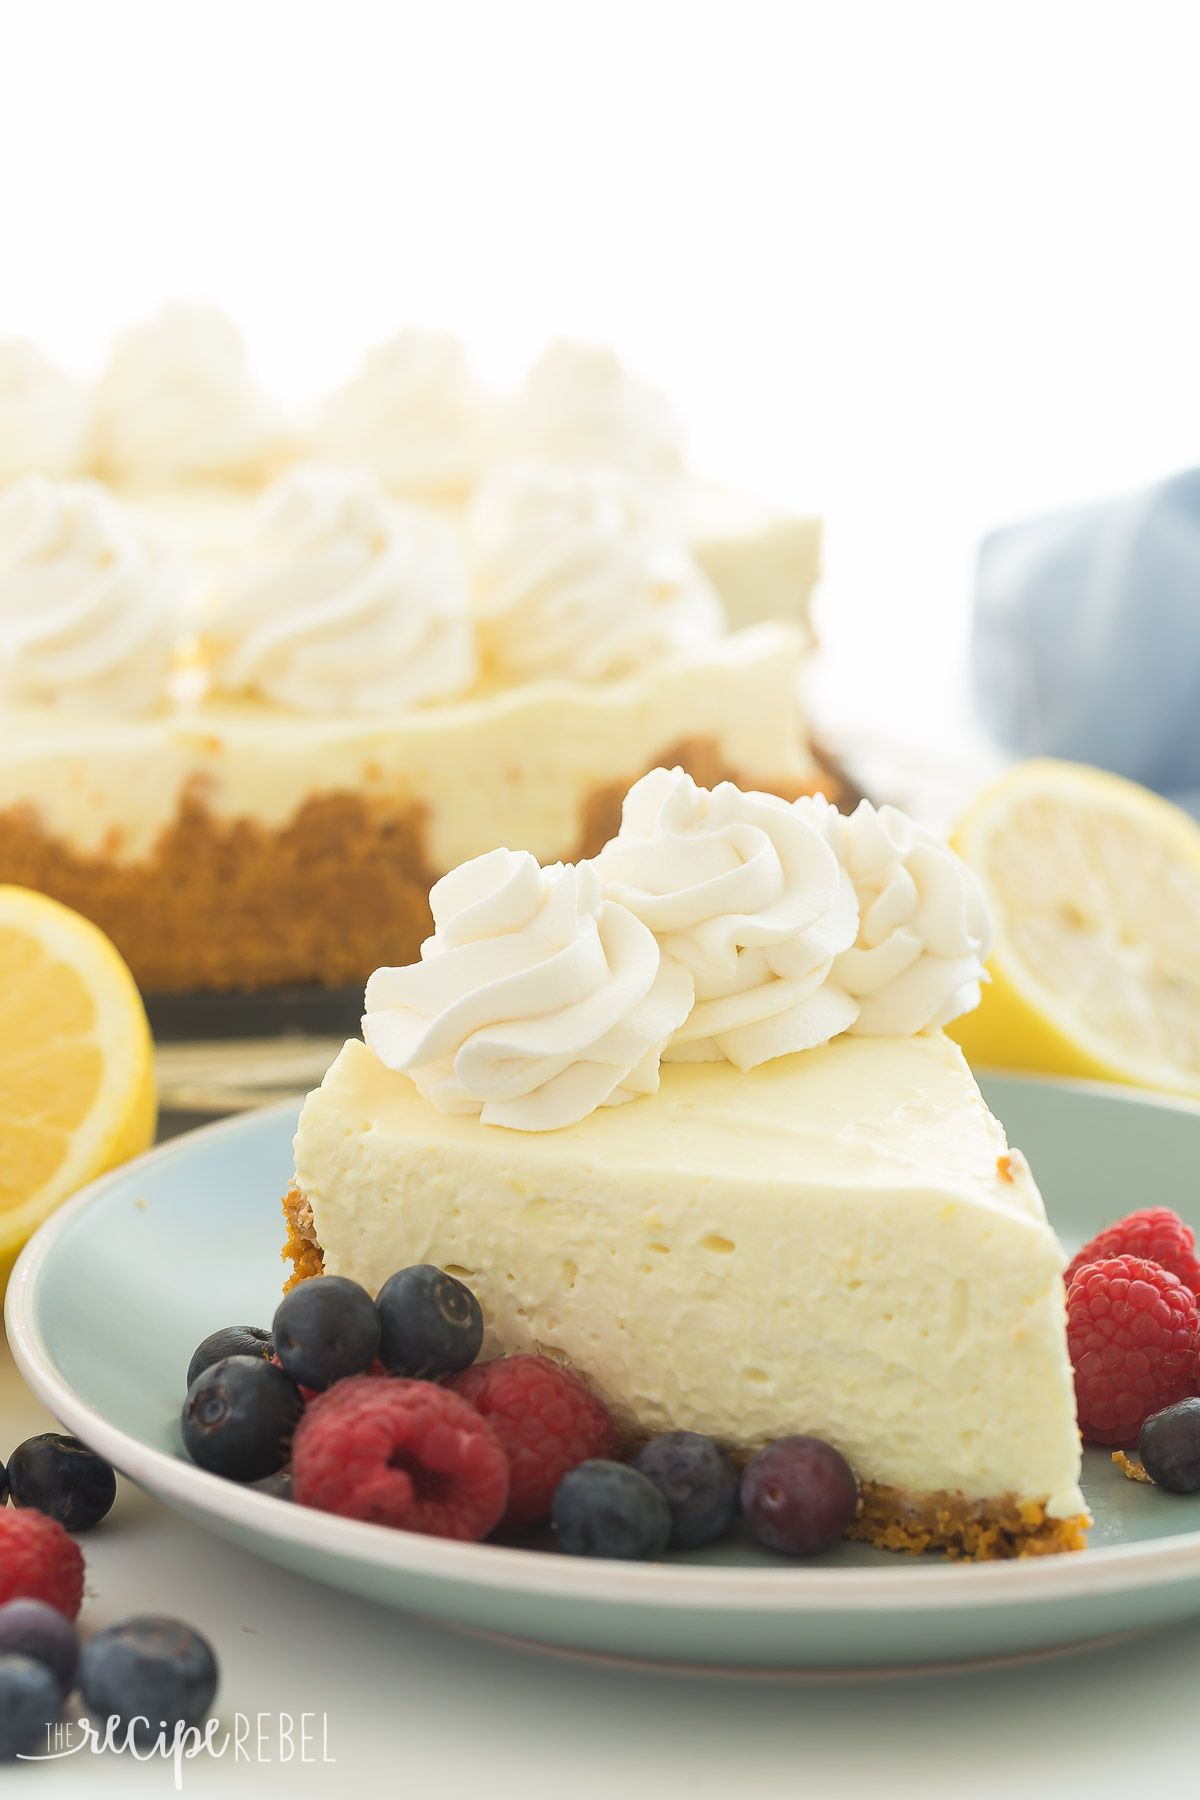 Video A Smooth Extra Creamy No Bake Lemon Cheesecake Recipe Made With Lemon Juice And Lemon Cheesecake Recipes Cheesecake Recipes Lemon And Lime Cheesecake